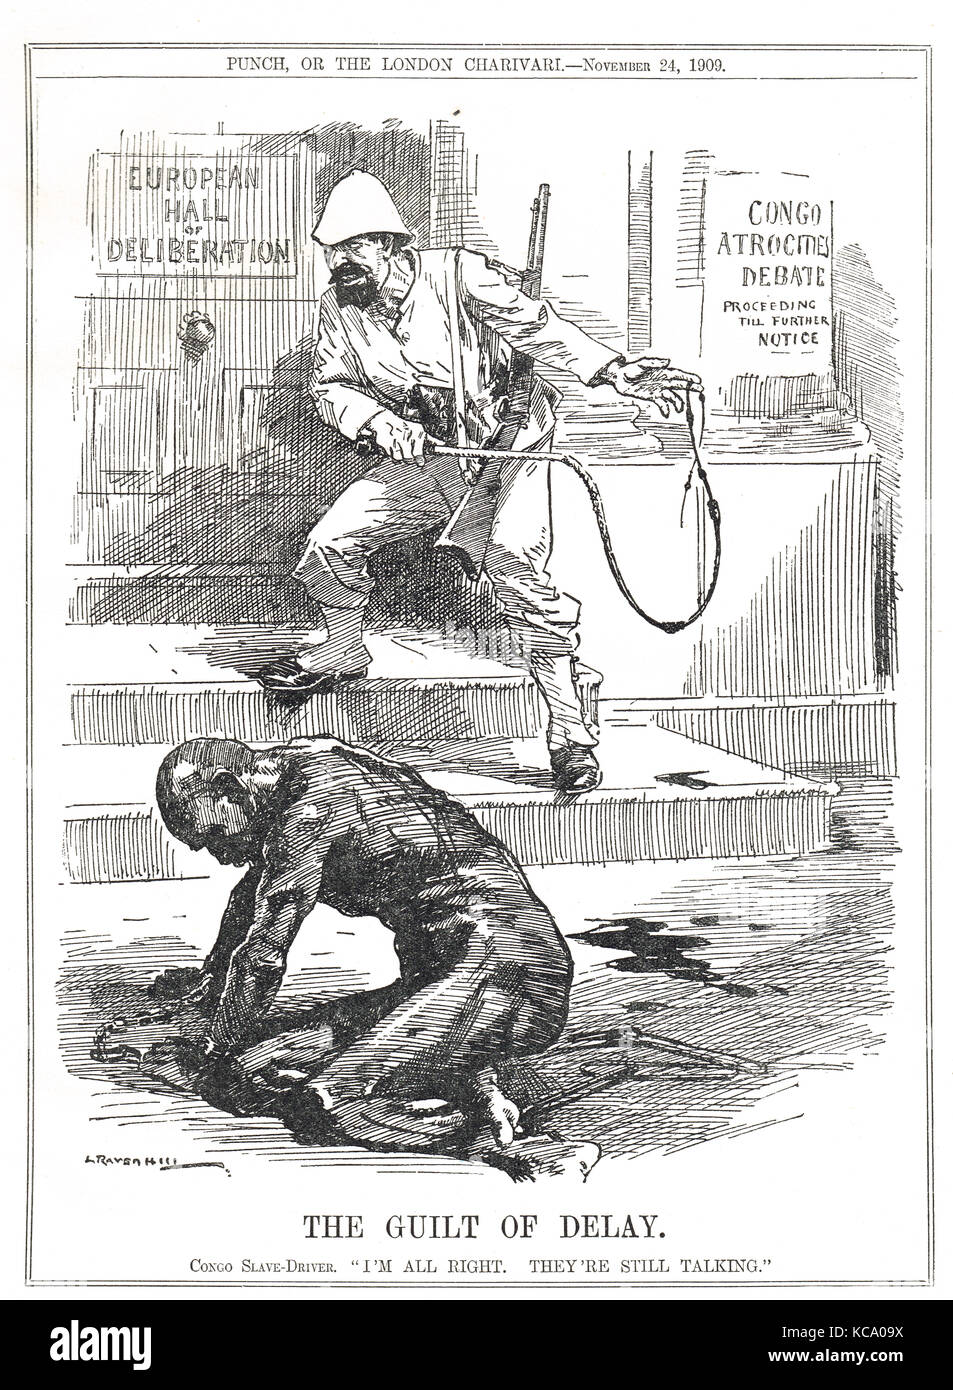 The Guilt of Delay, Slavery in the Belgian Congo, Punch cartoon, 1909 - Stock Image